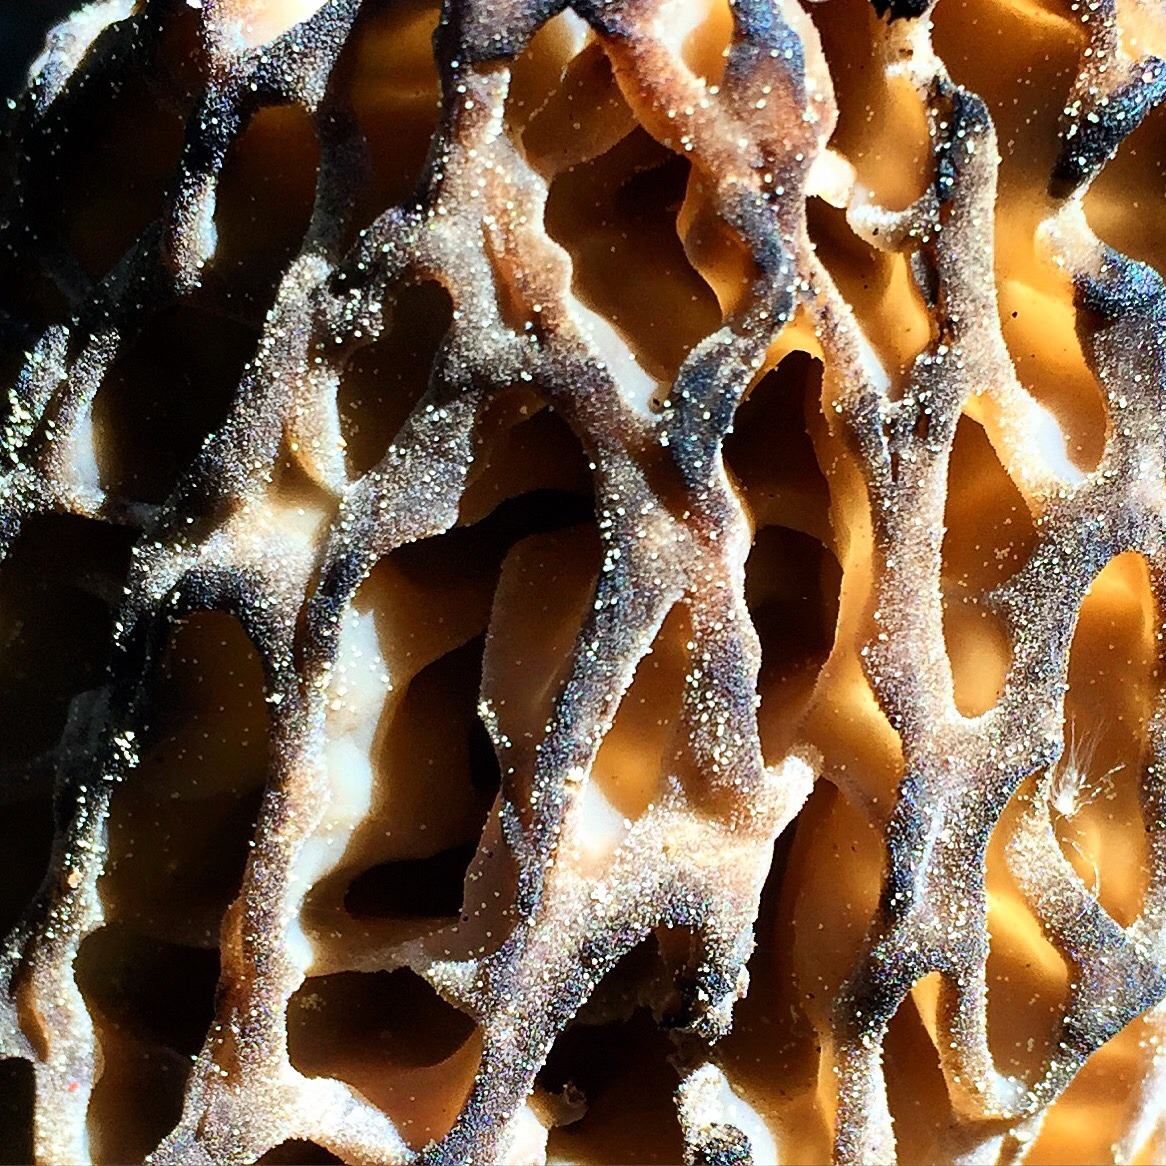 Mother Nature's honeycomb design on the black morel mushroom.